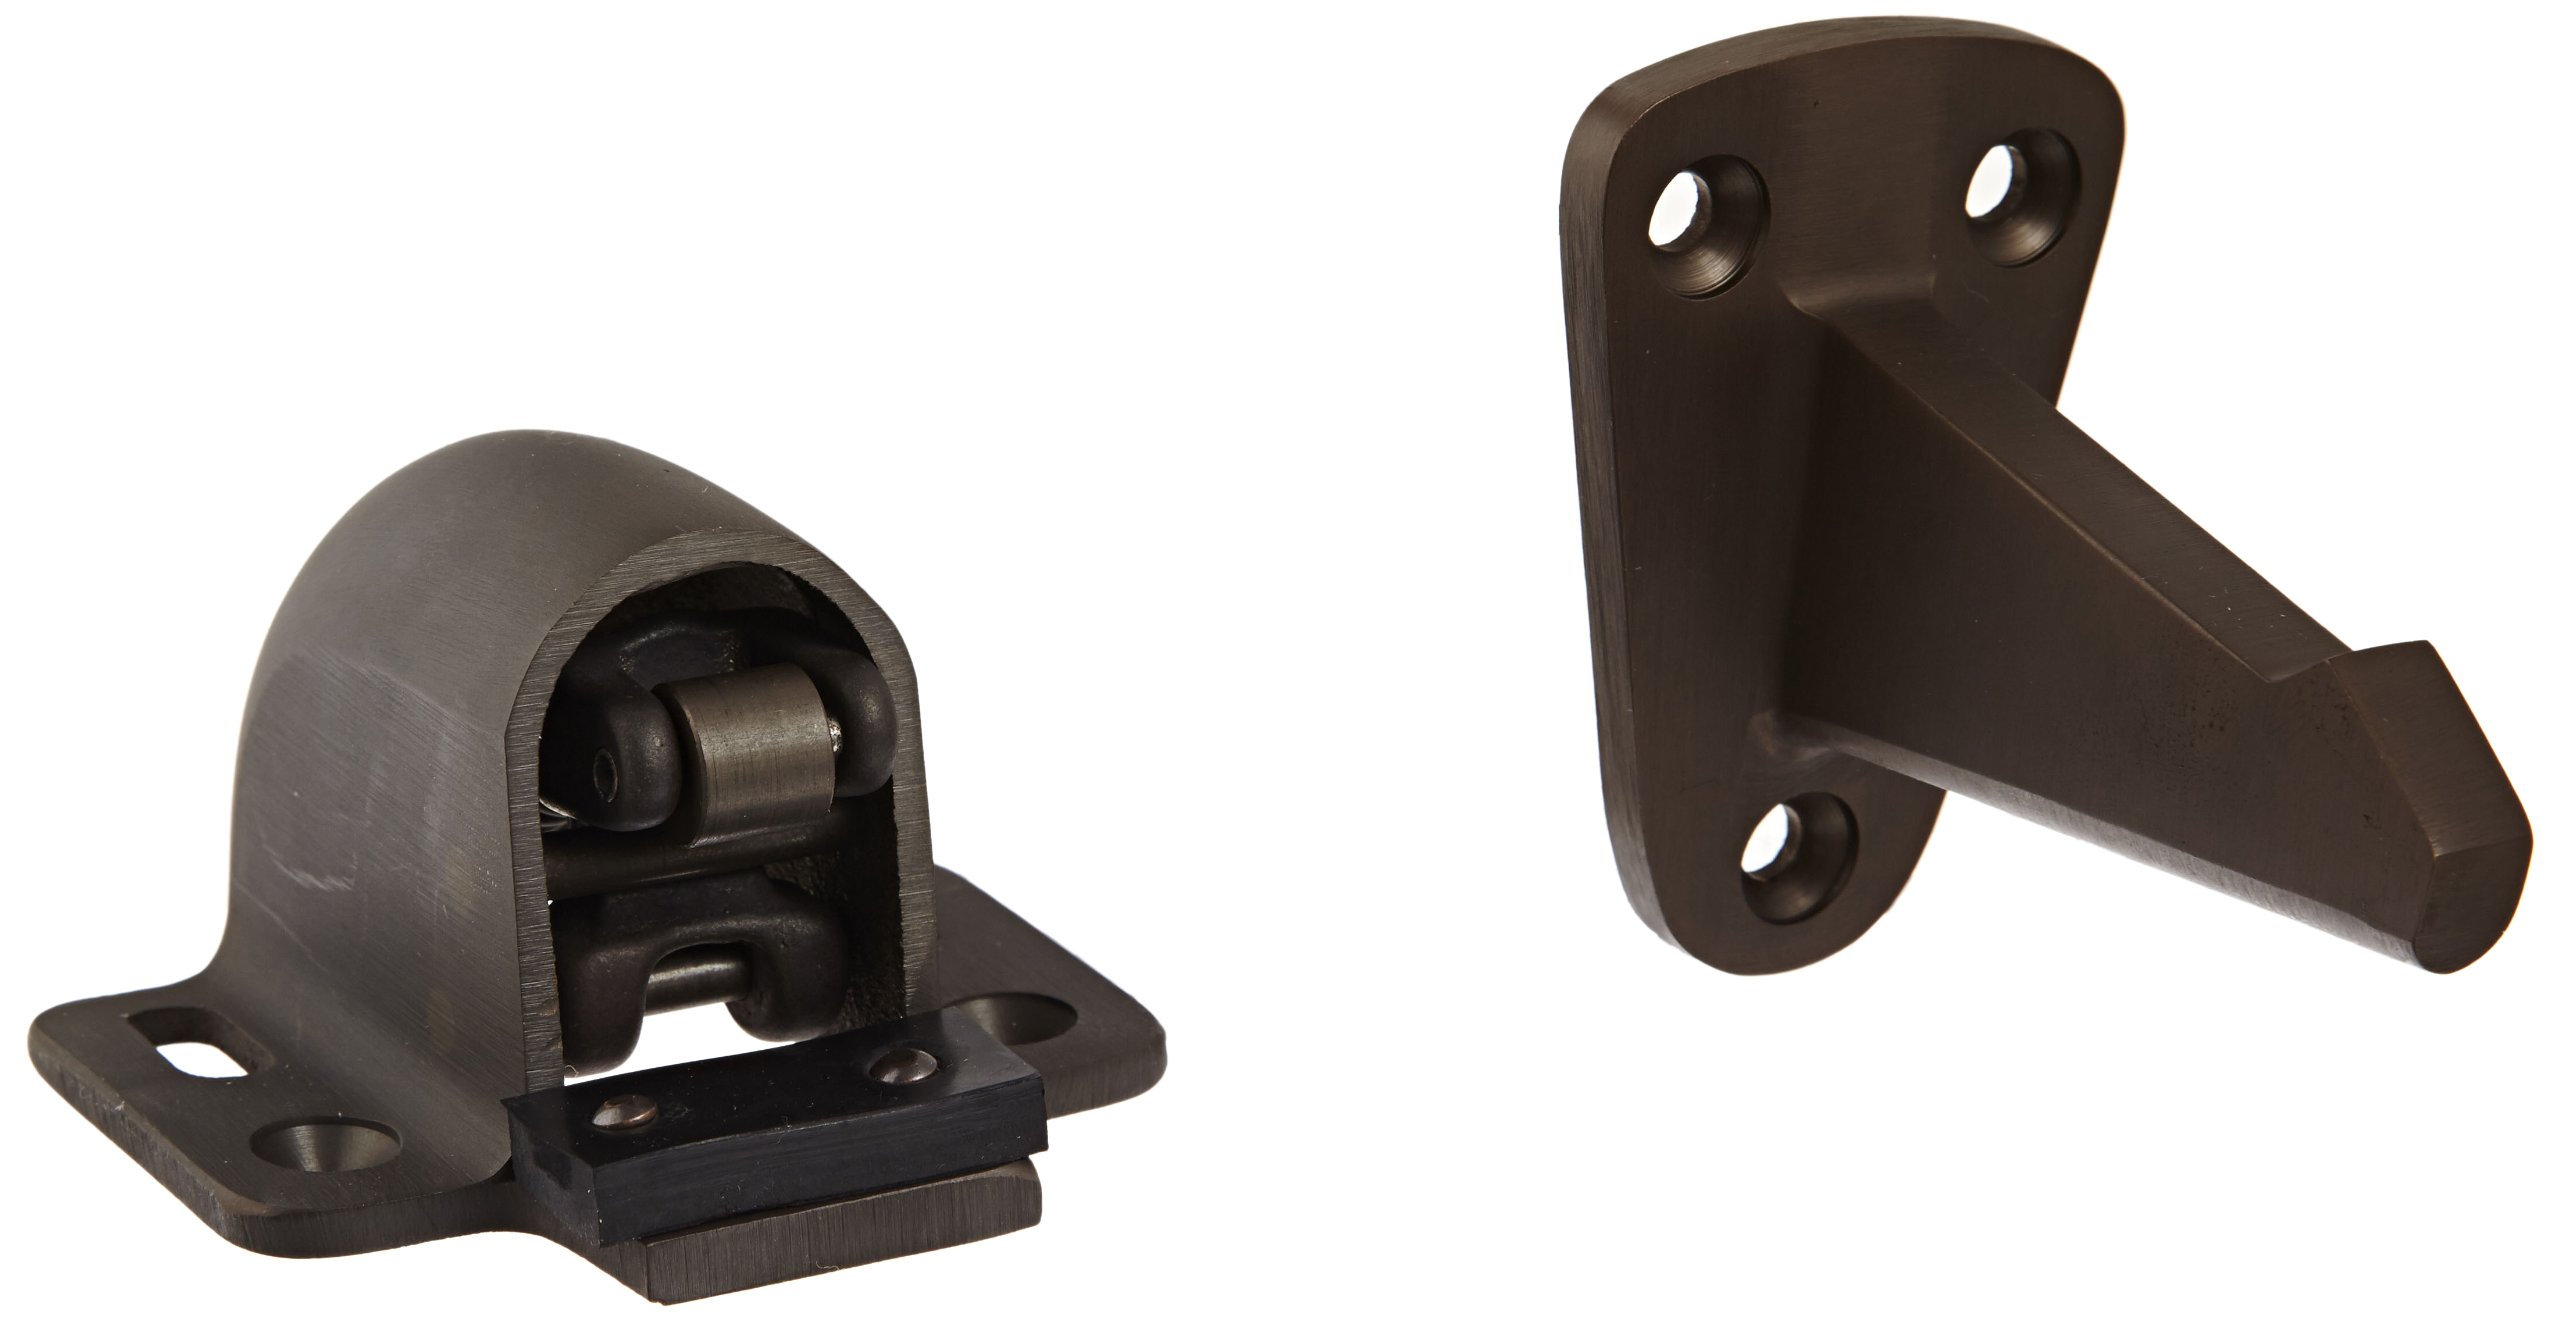 Rockwood 494R.10B Bronze Wall Mount Automatic Door Holder with Stop, Satin Oxidized Oil Rubbed Finish, 3-3/4'' Wall to Door Projection, Includes Fasteners for Use with Solid Wood Doors and Masonry Walls